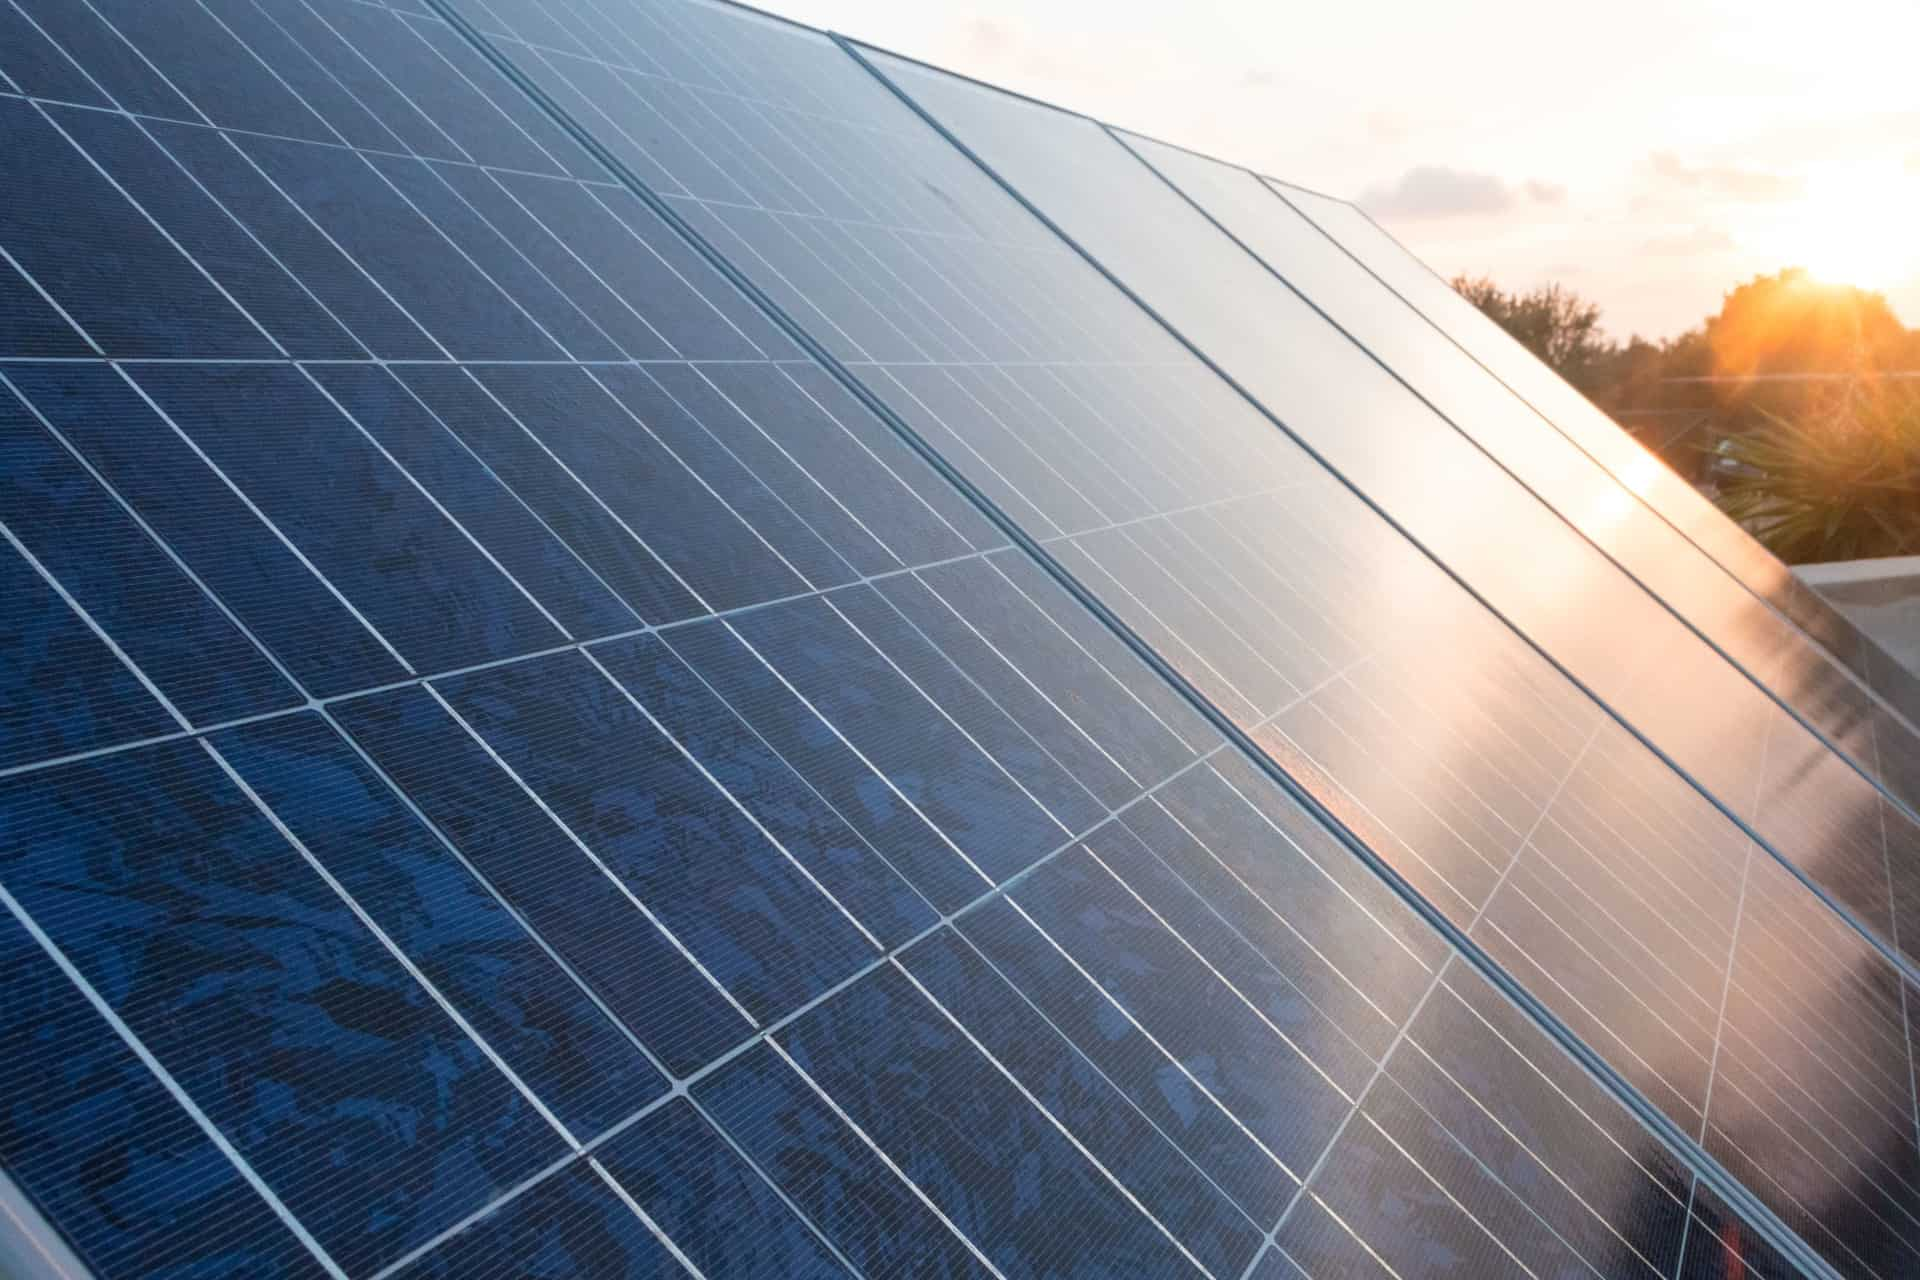 close up up image of a solar panel